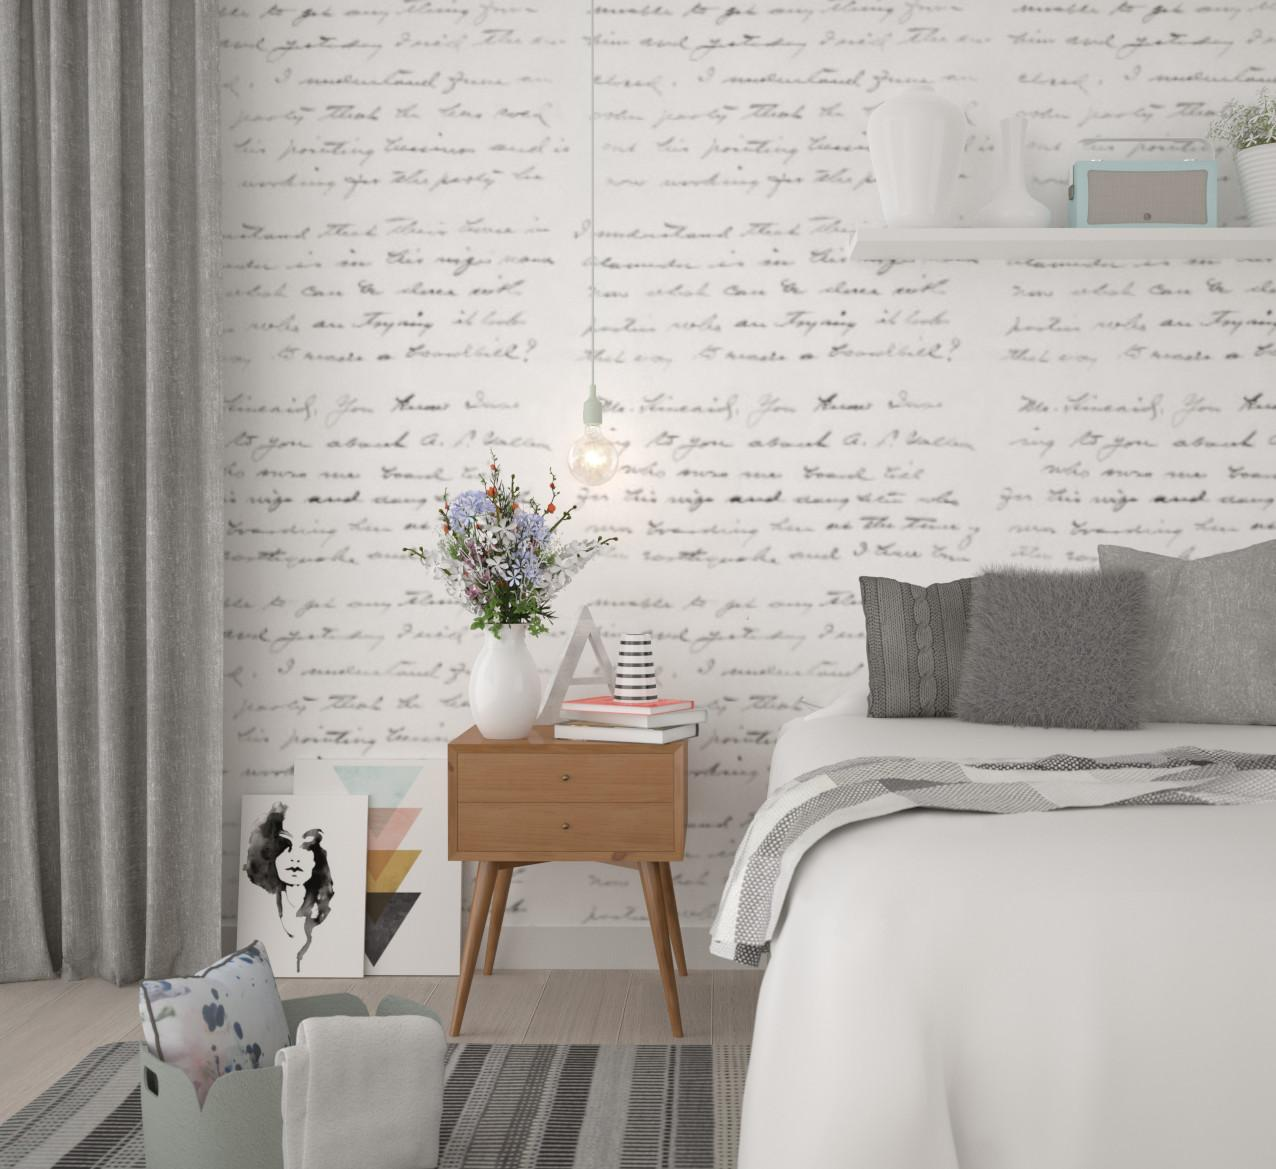 Breezy Scandinavian Bedroom Anita Brown Visualisation